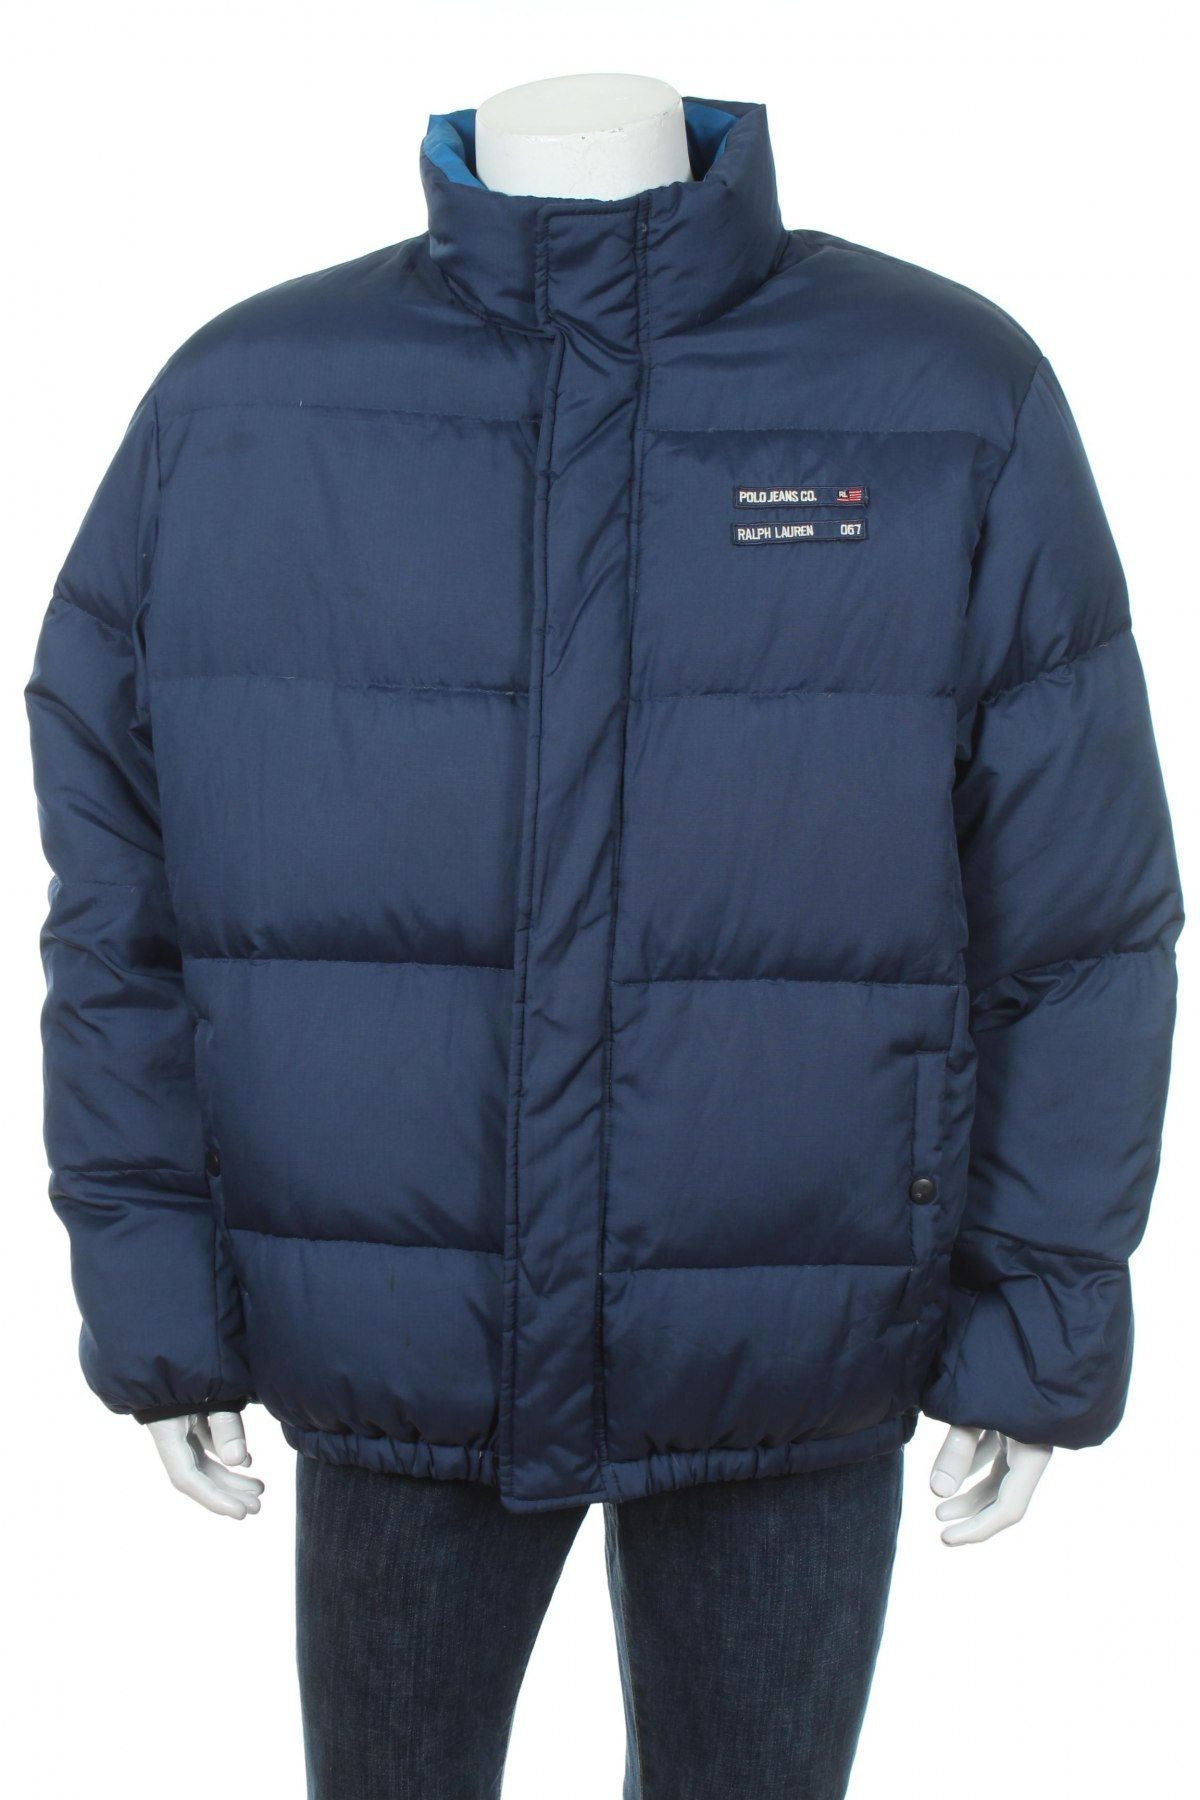 Vintage Polo Ralph Lauren Polo Jeans Quilted Winter Puffer